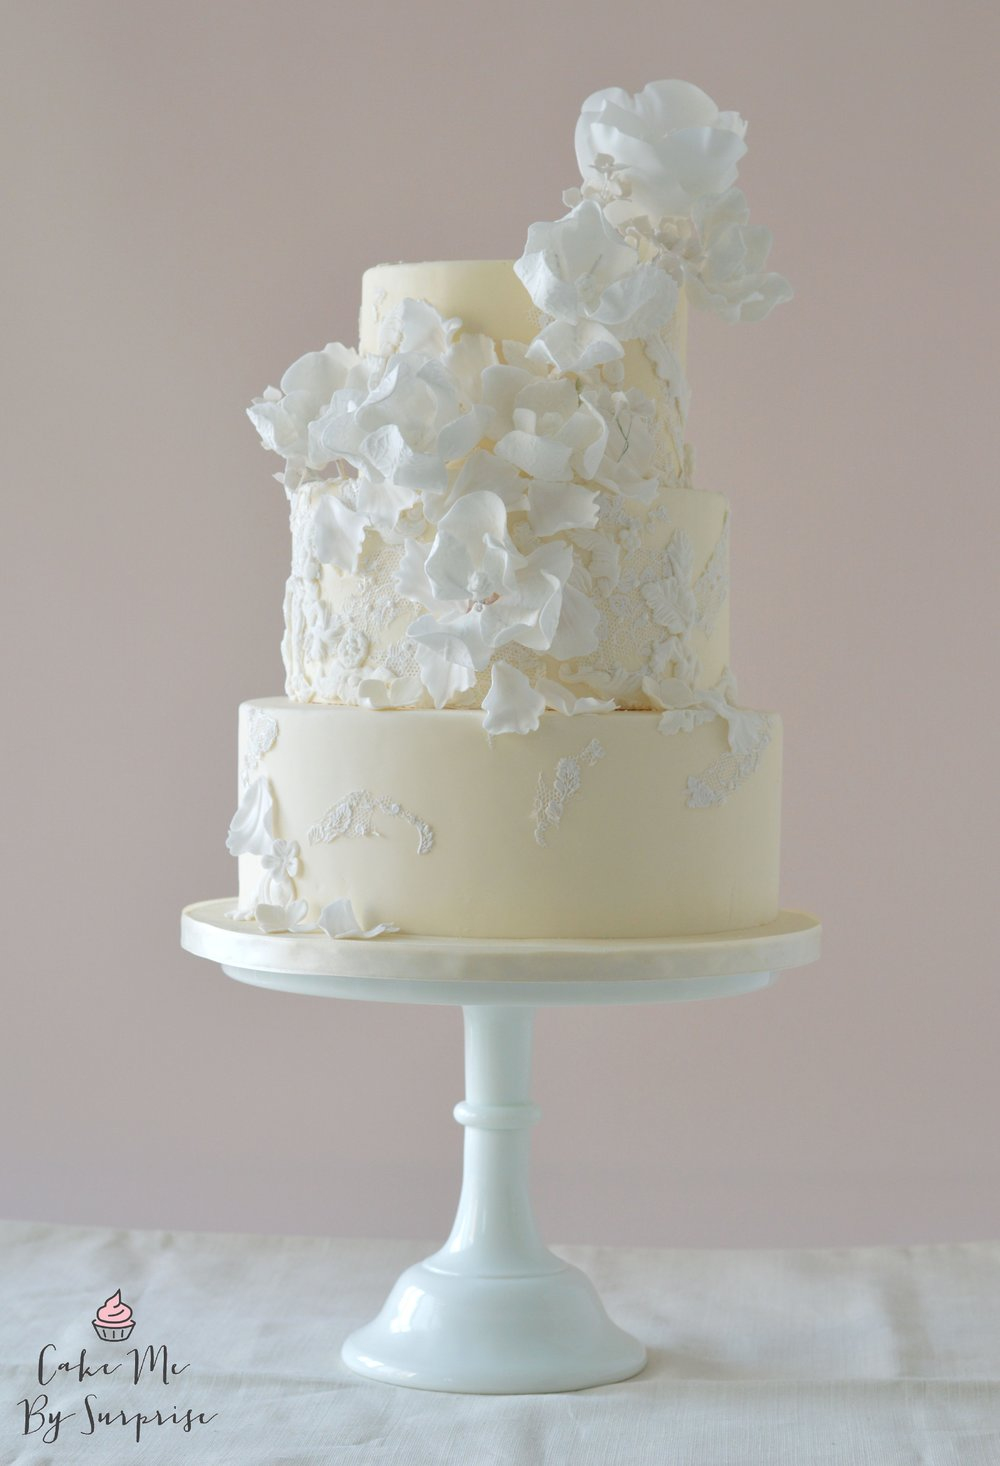 Vanity Fair- Ivory White Wedding Cake Bringing couture design to the forefront, this ivory finished cake is whimsical in feel, with a spray of white sugar flowers dancing upon the cake. Serves 70 £435